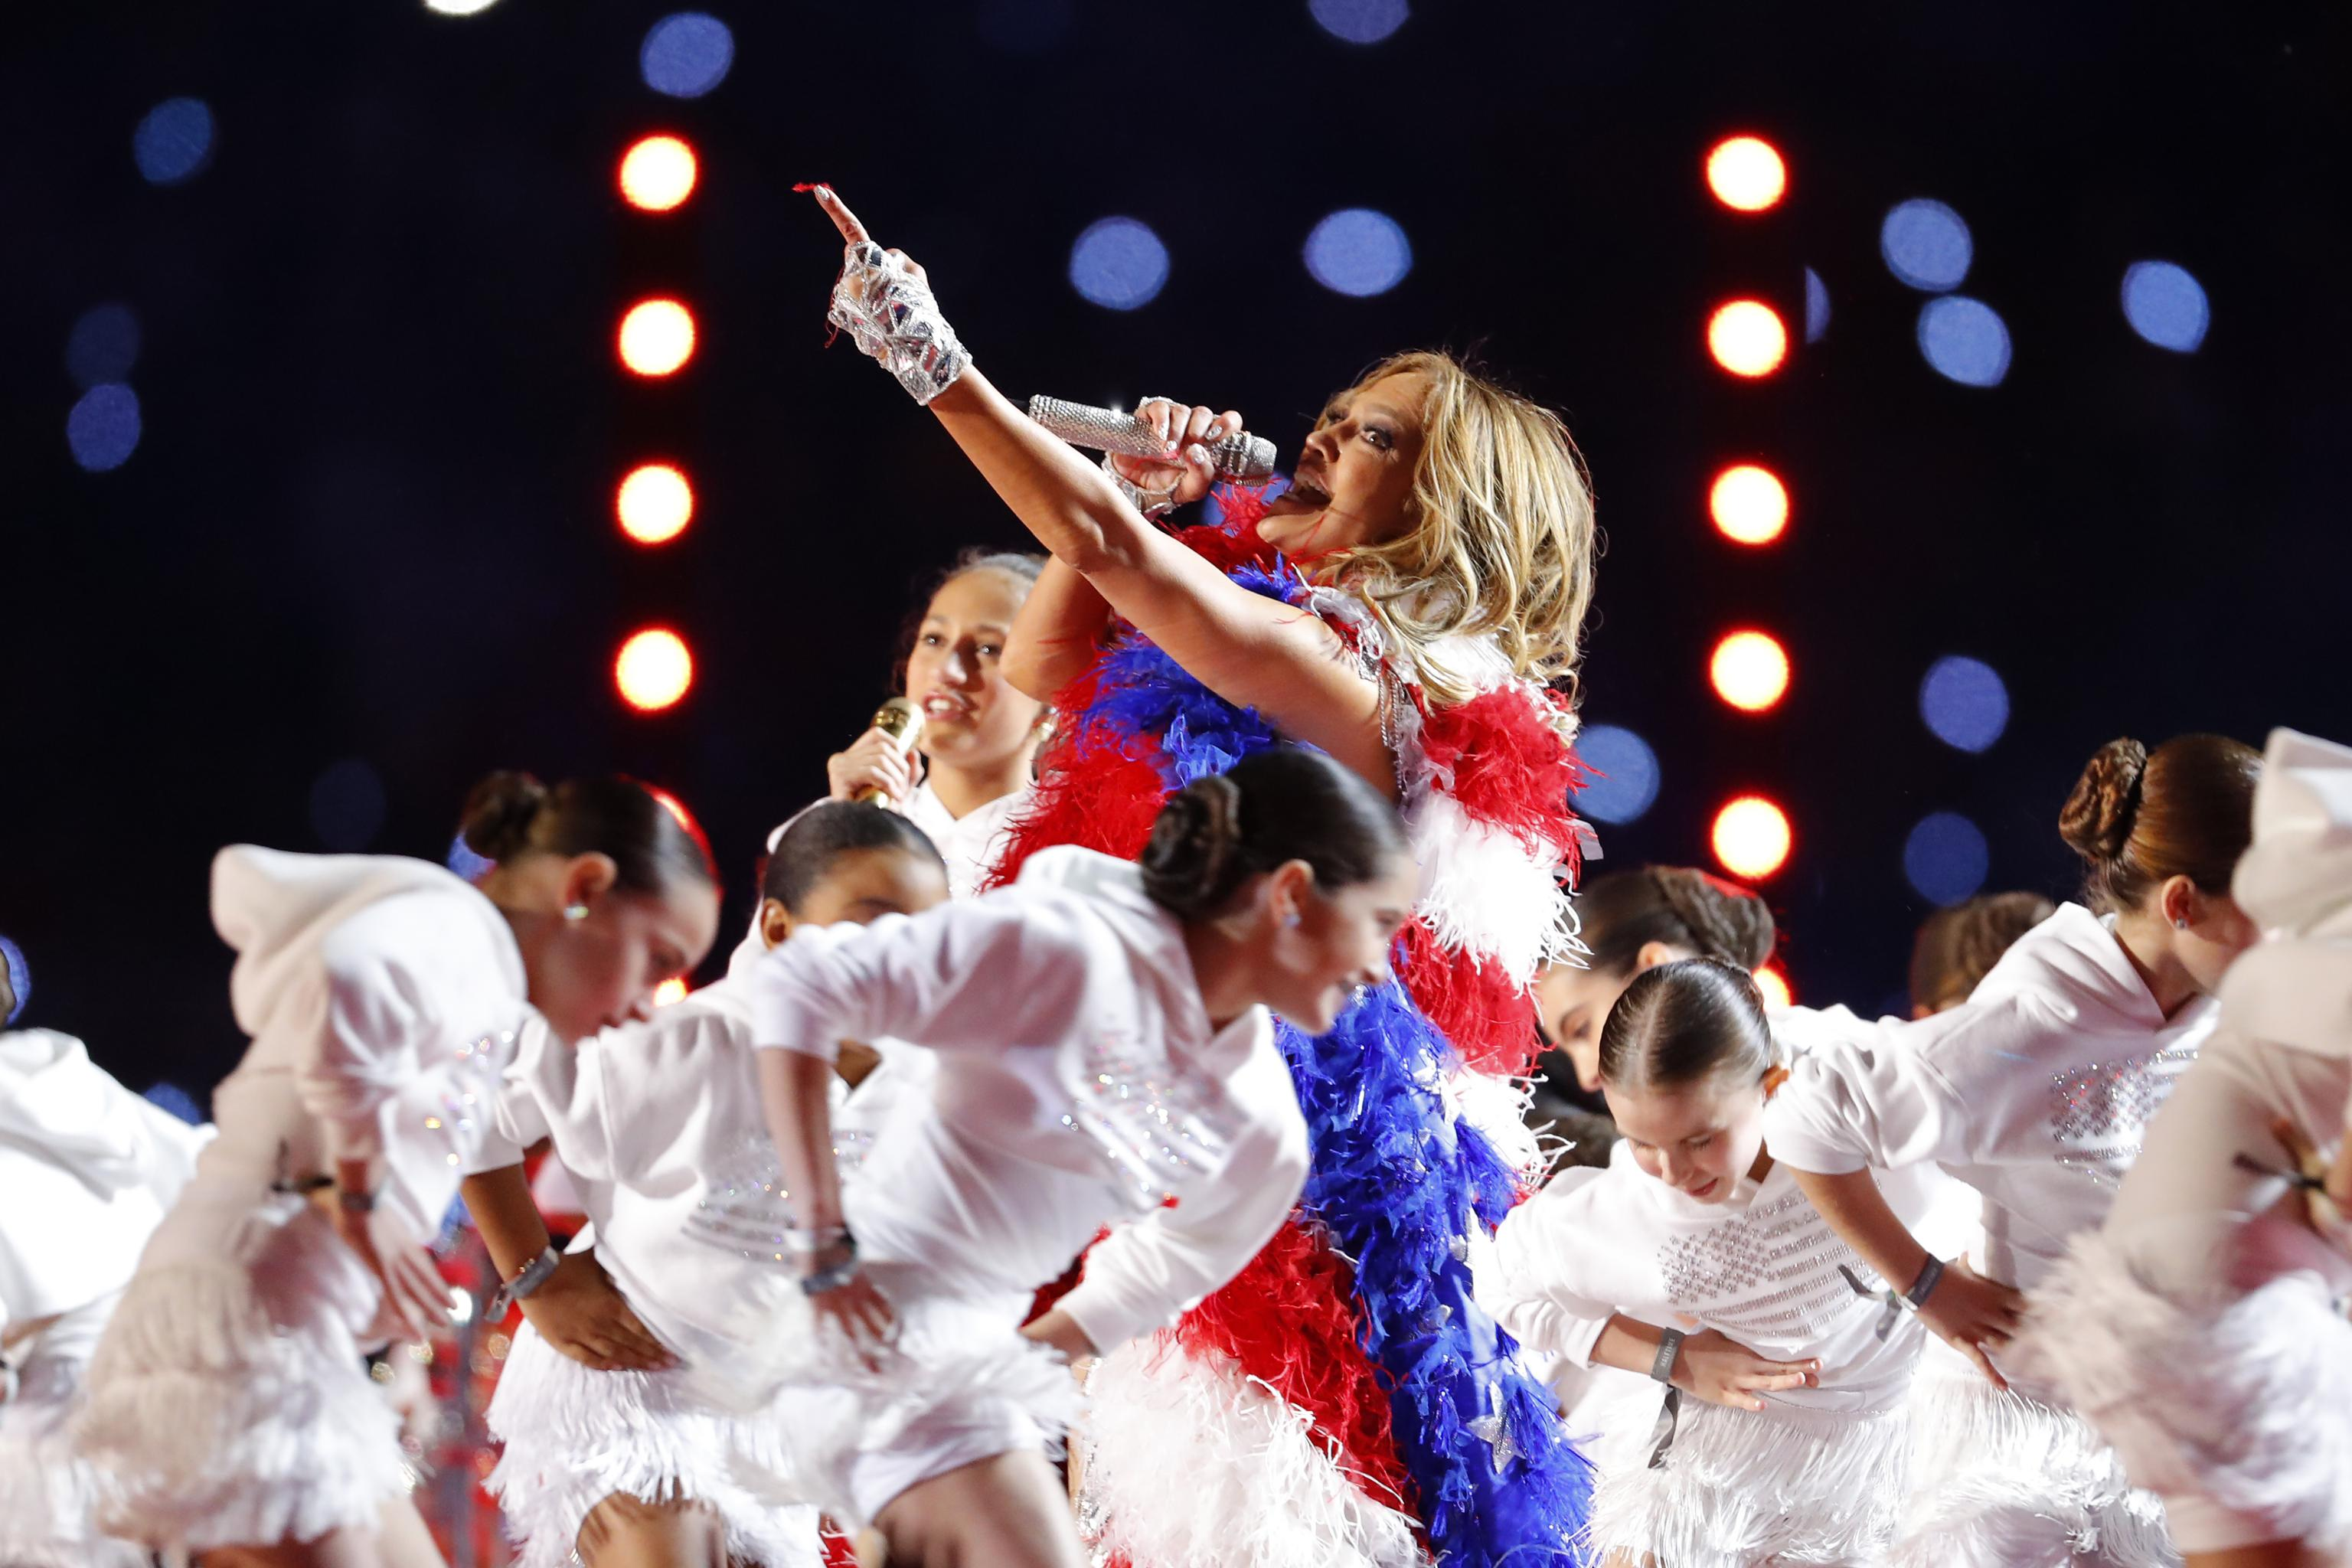 Super Bowl Halftime Show 2020 Twitter Reacts To J Lo Shakira Performance Bleacher Report Latest News Videos And Highlights